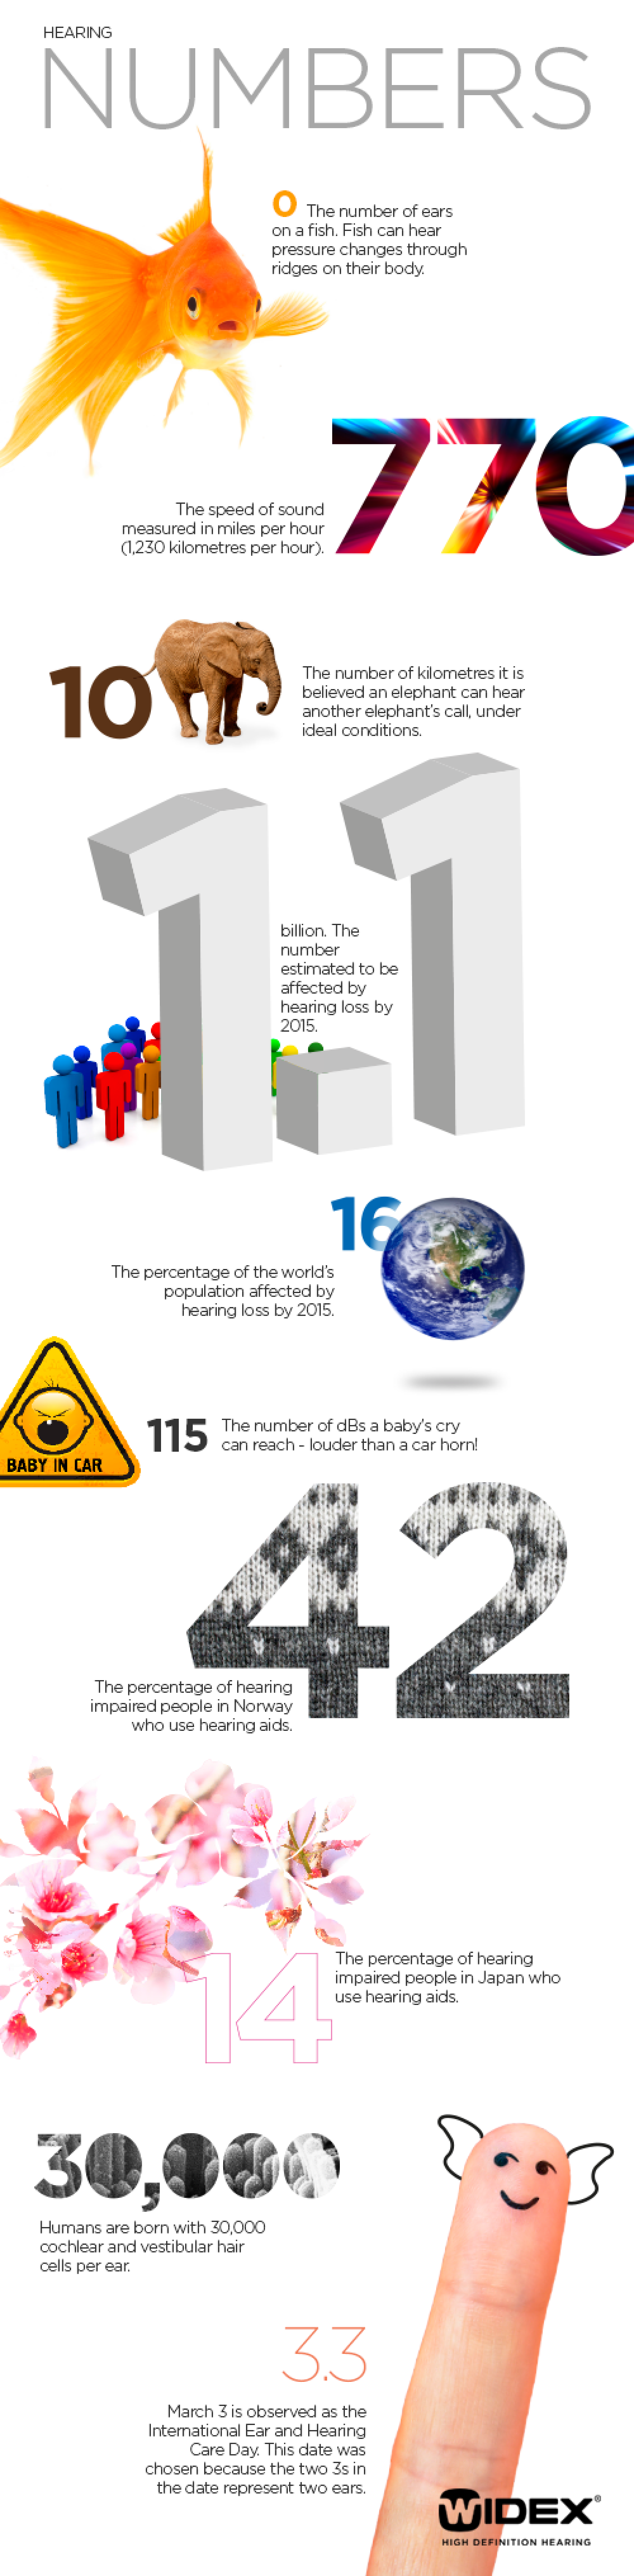 Hearing in numbers Infographic